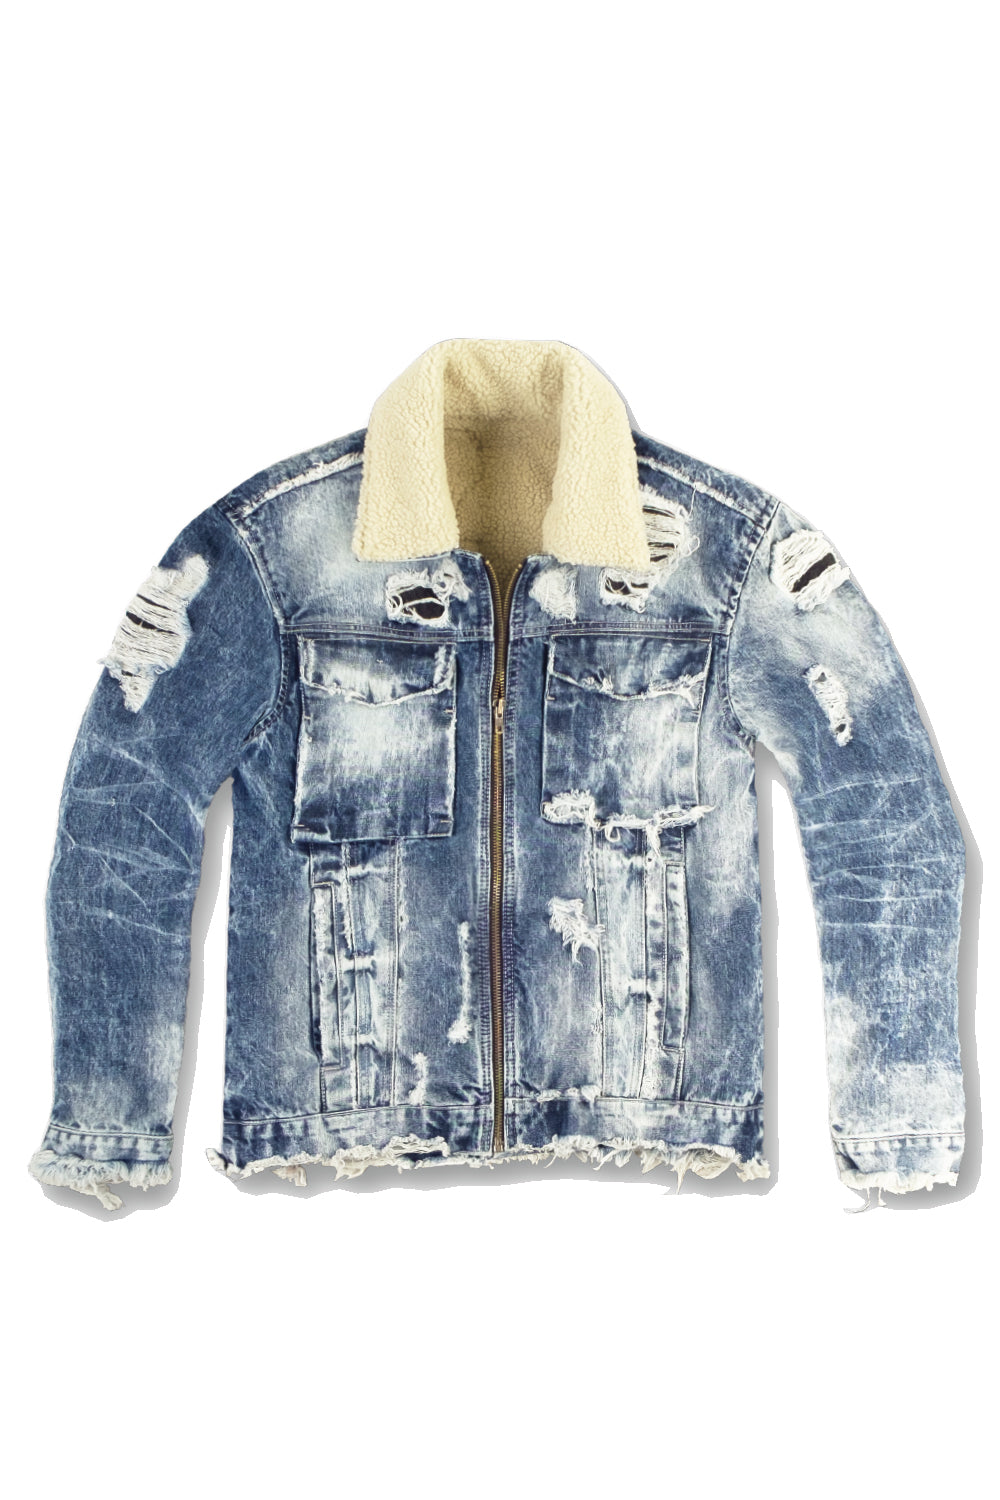 Jordan Craig - Kids New School Sherpa Trucker Jacket (Destroyed Blue)